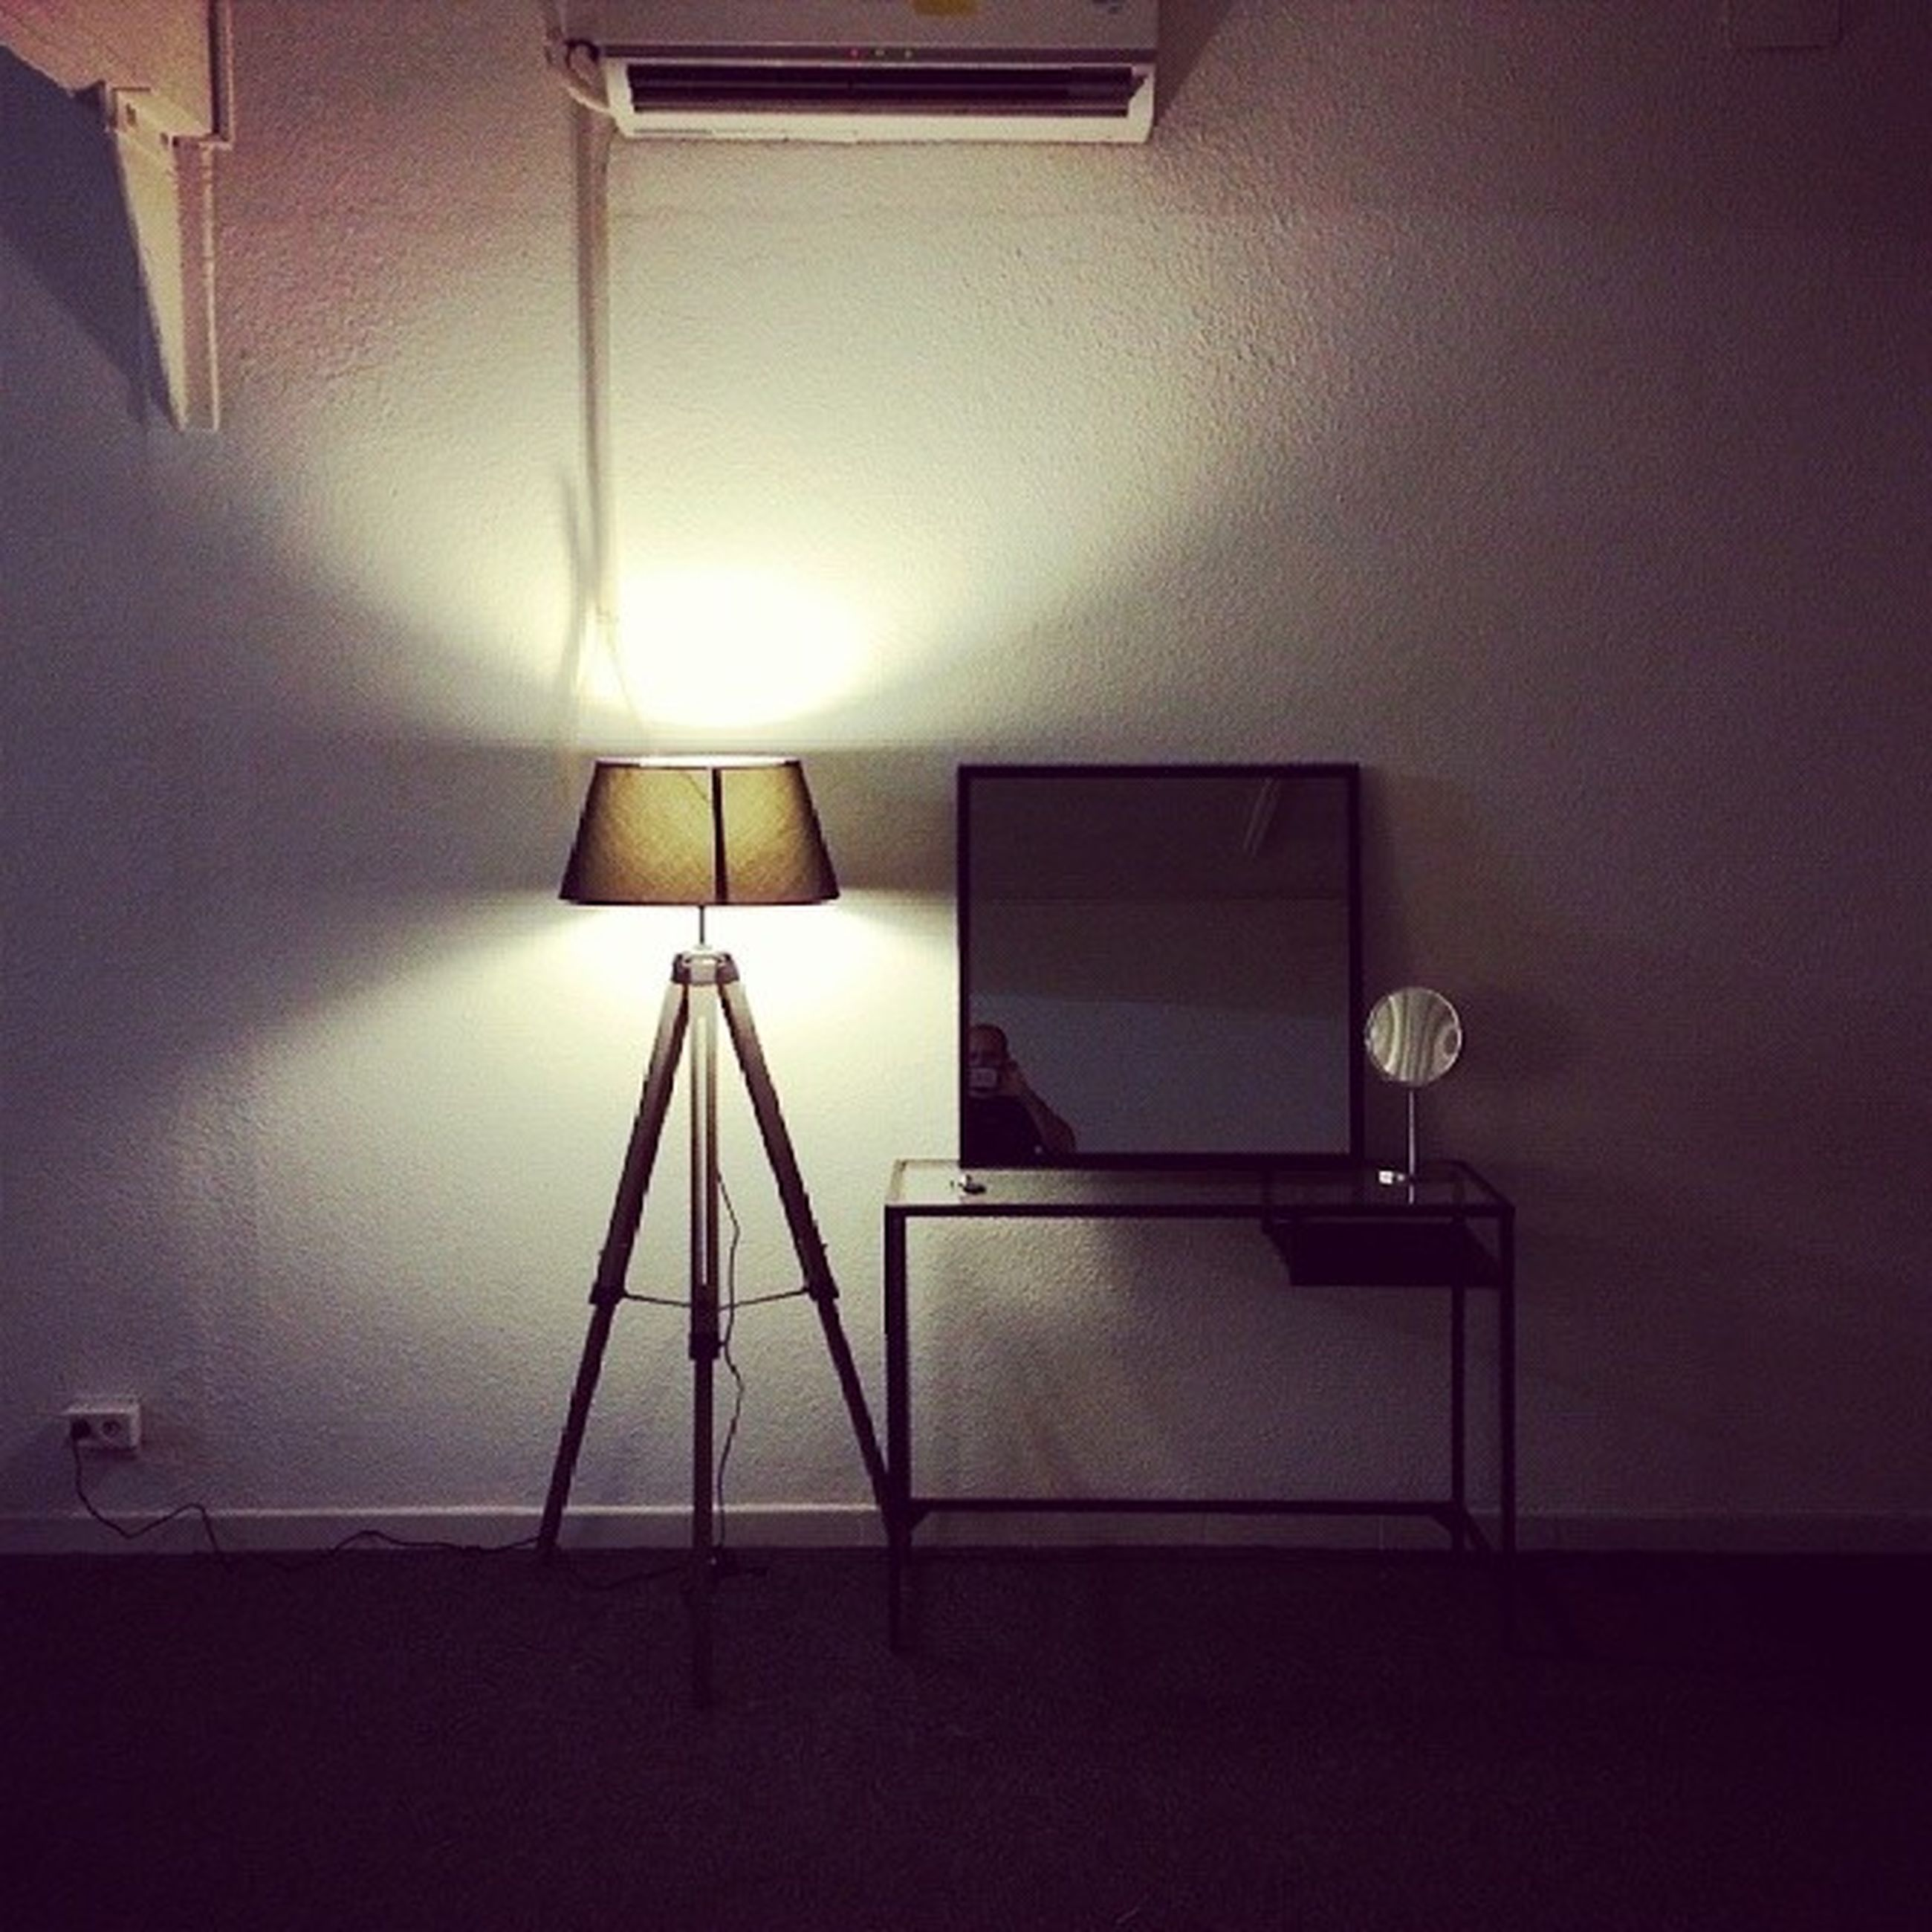 indoors, illuminated, lighting equipment, ceiling, electric lamp, wall - building feature, electric light, architecture, built structure, lamp, electricity, home interior, light - natural phenomenon, absence, wall, empty, low angle view, no people, glowing, house